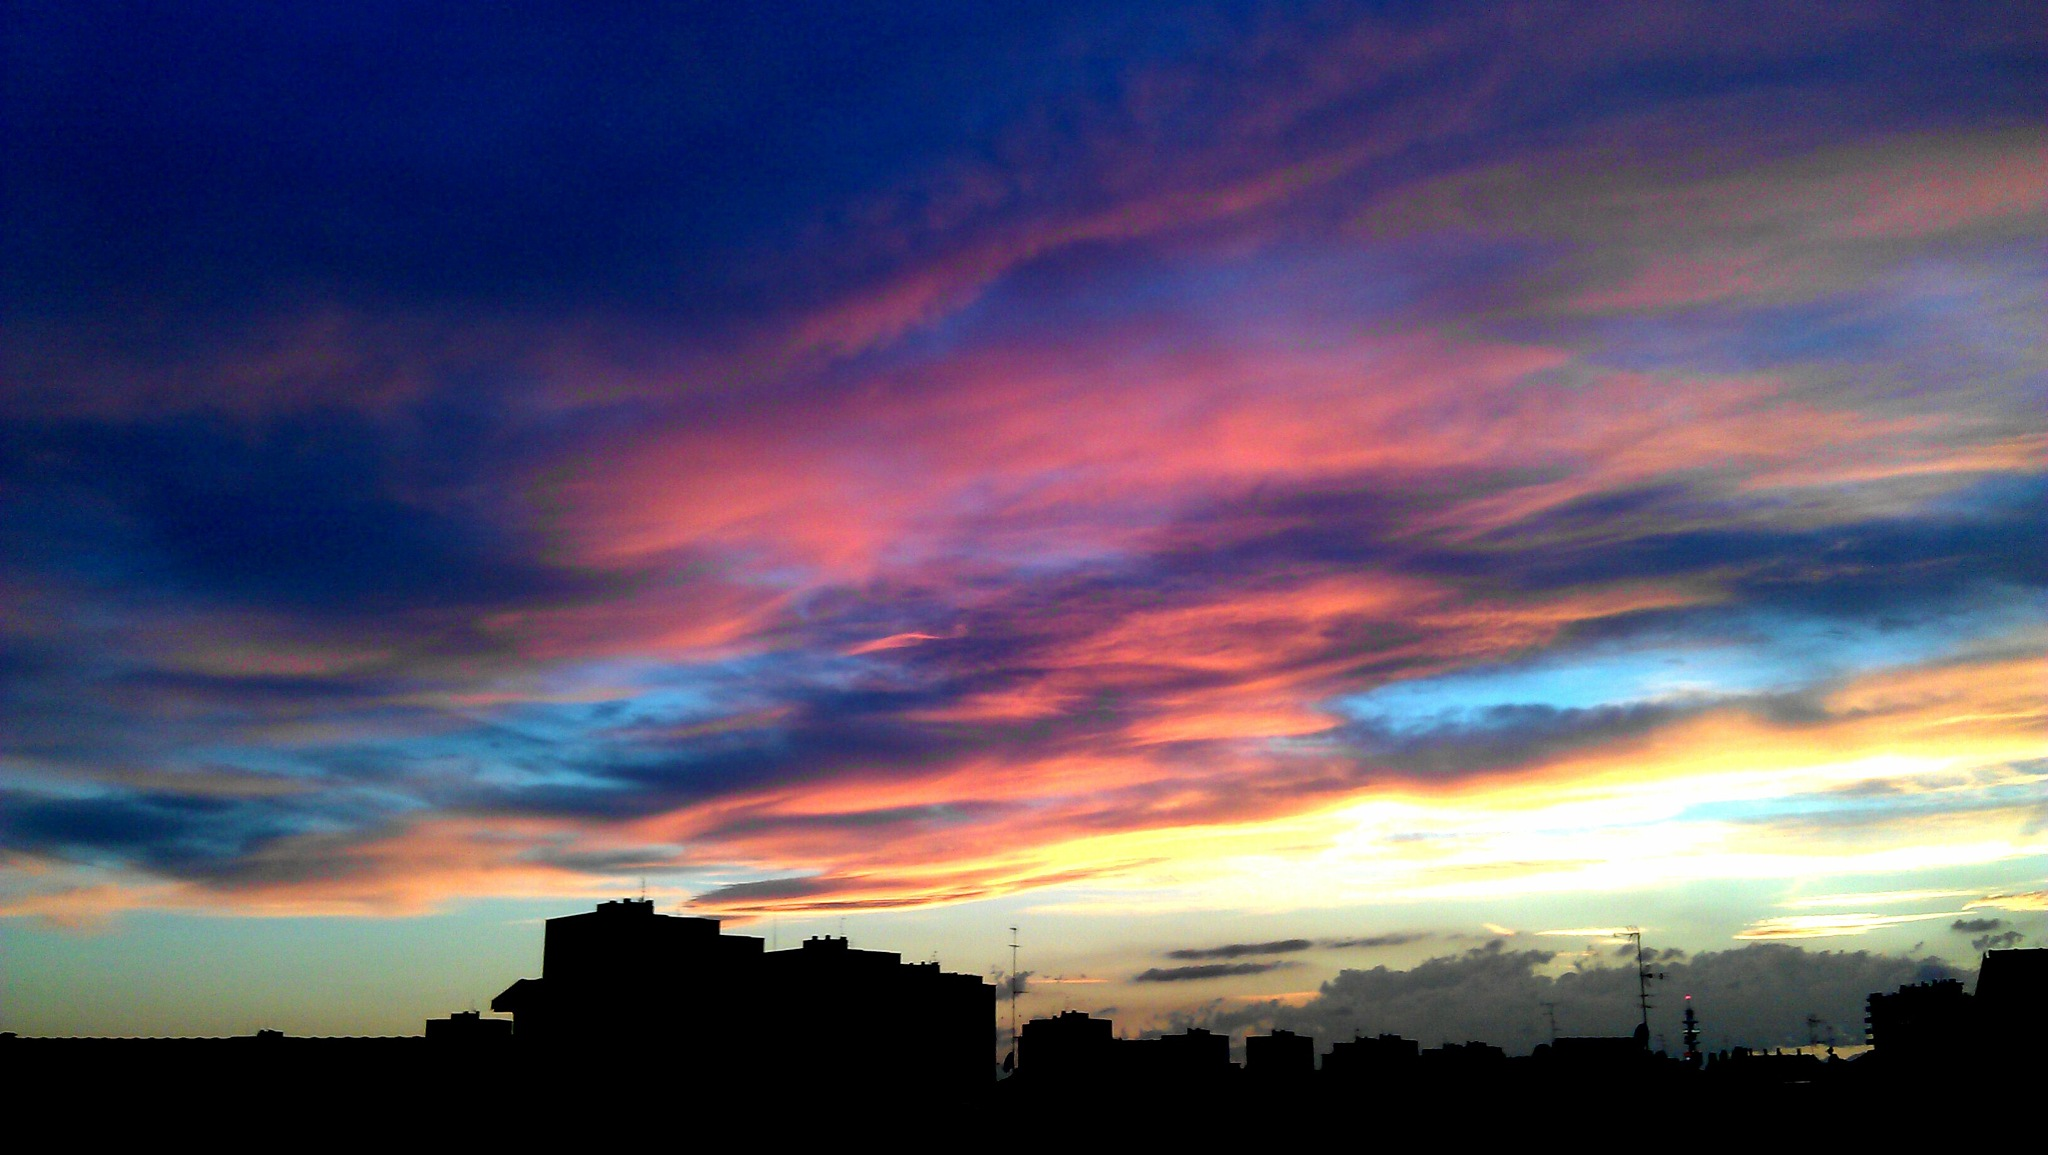 A sunset in Milan by Paolo Pasquali